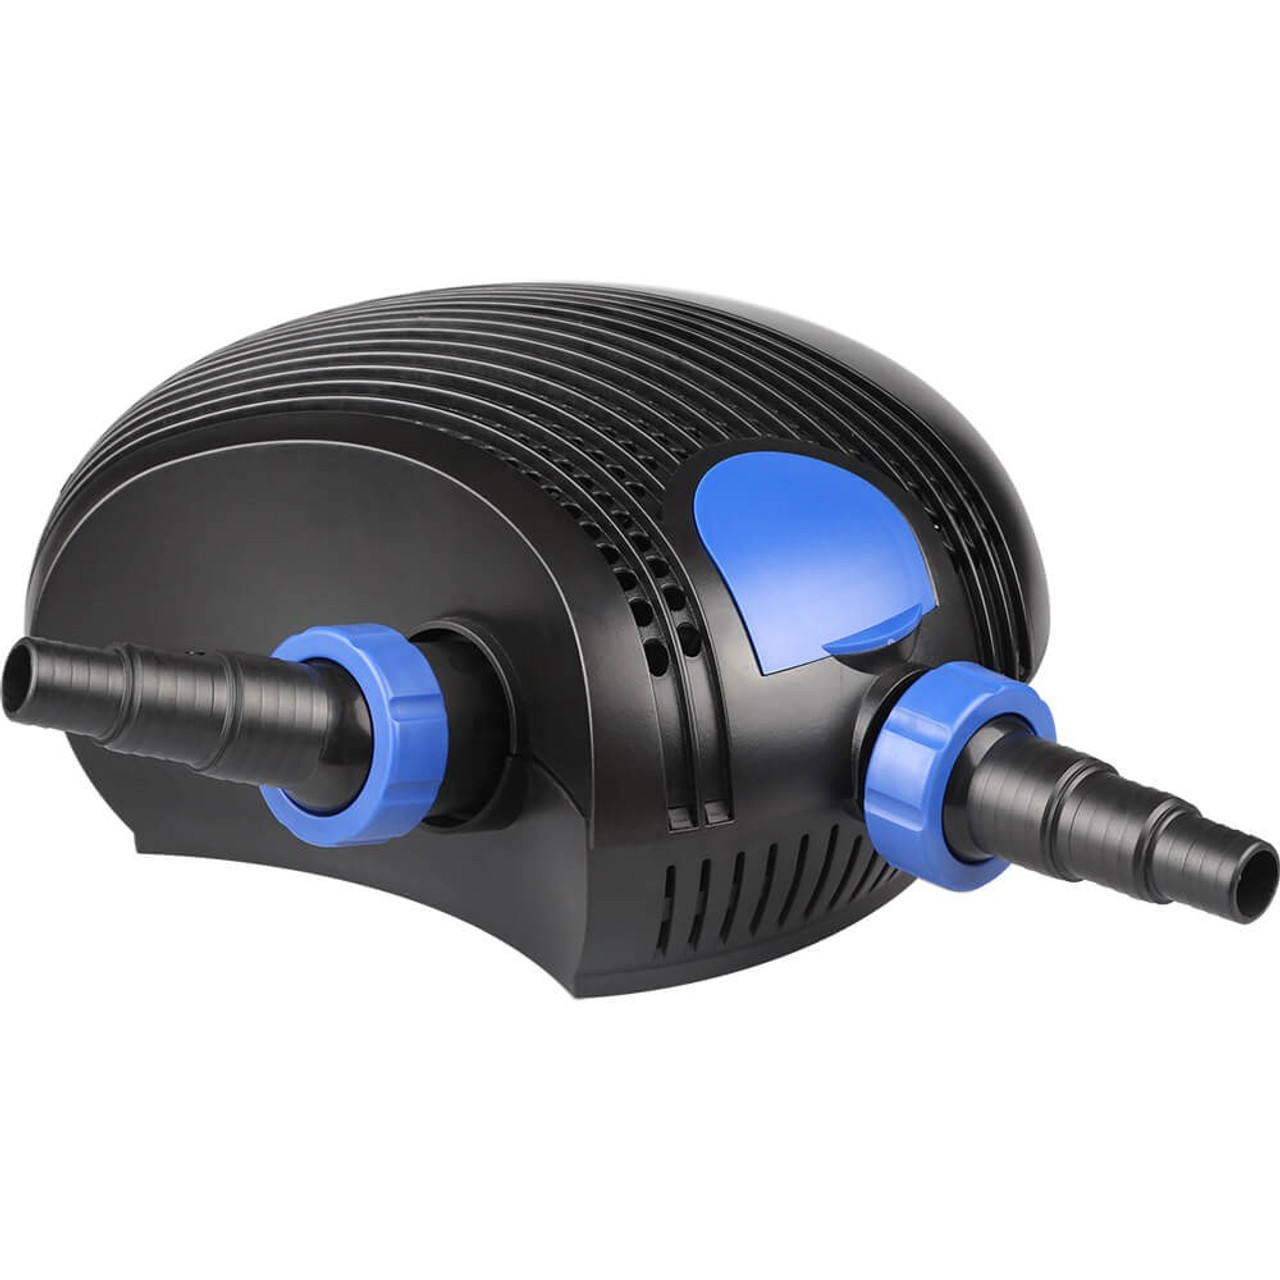 PUMP WATERFALL PONDMATE 13000L/H 5.2M 180W 240V